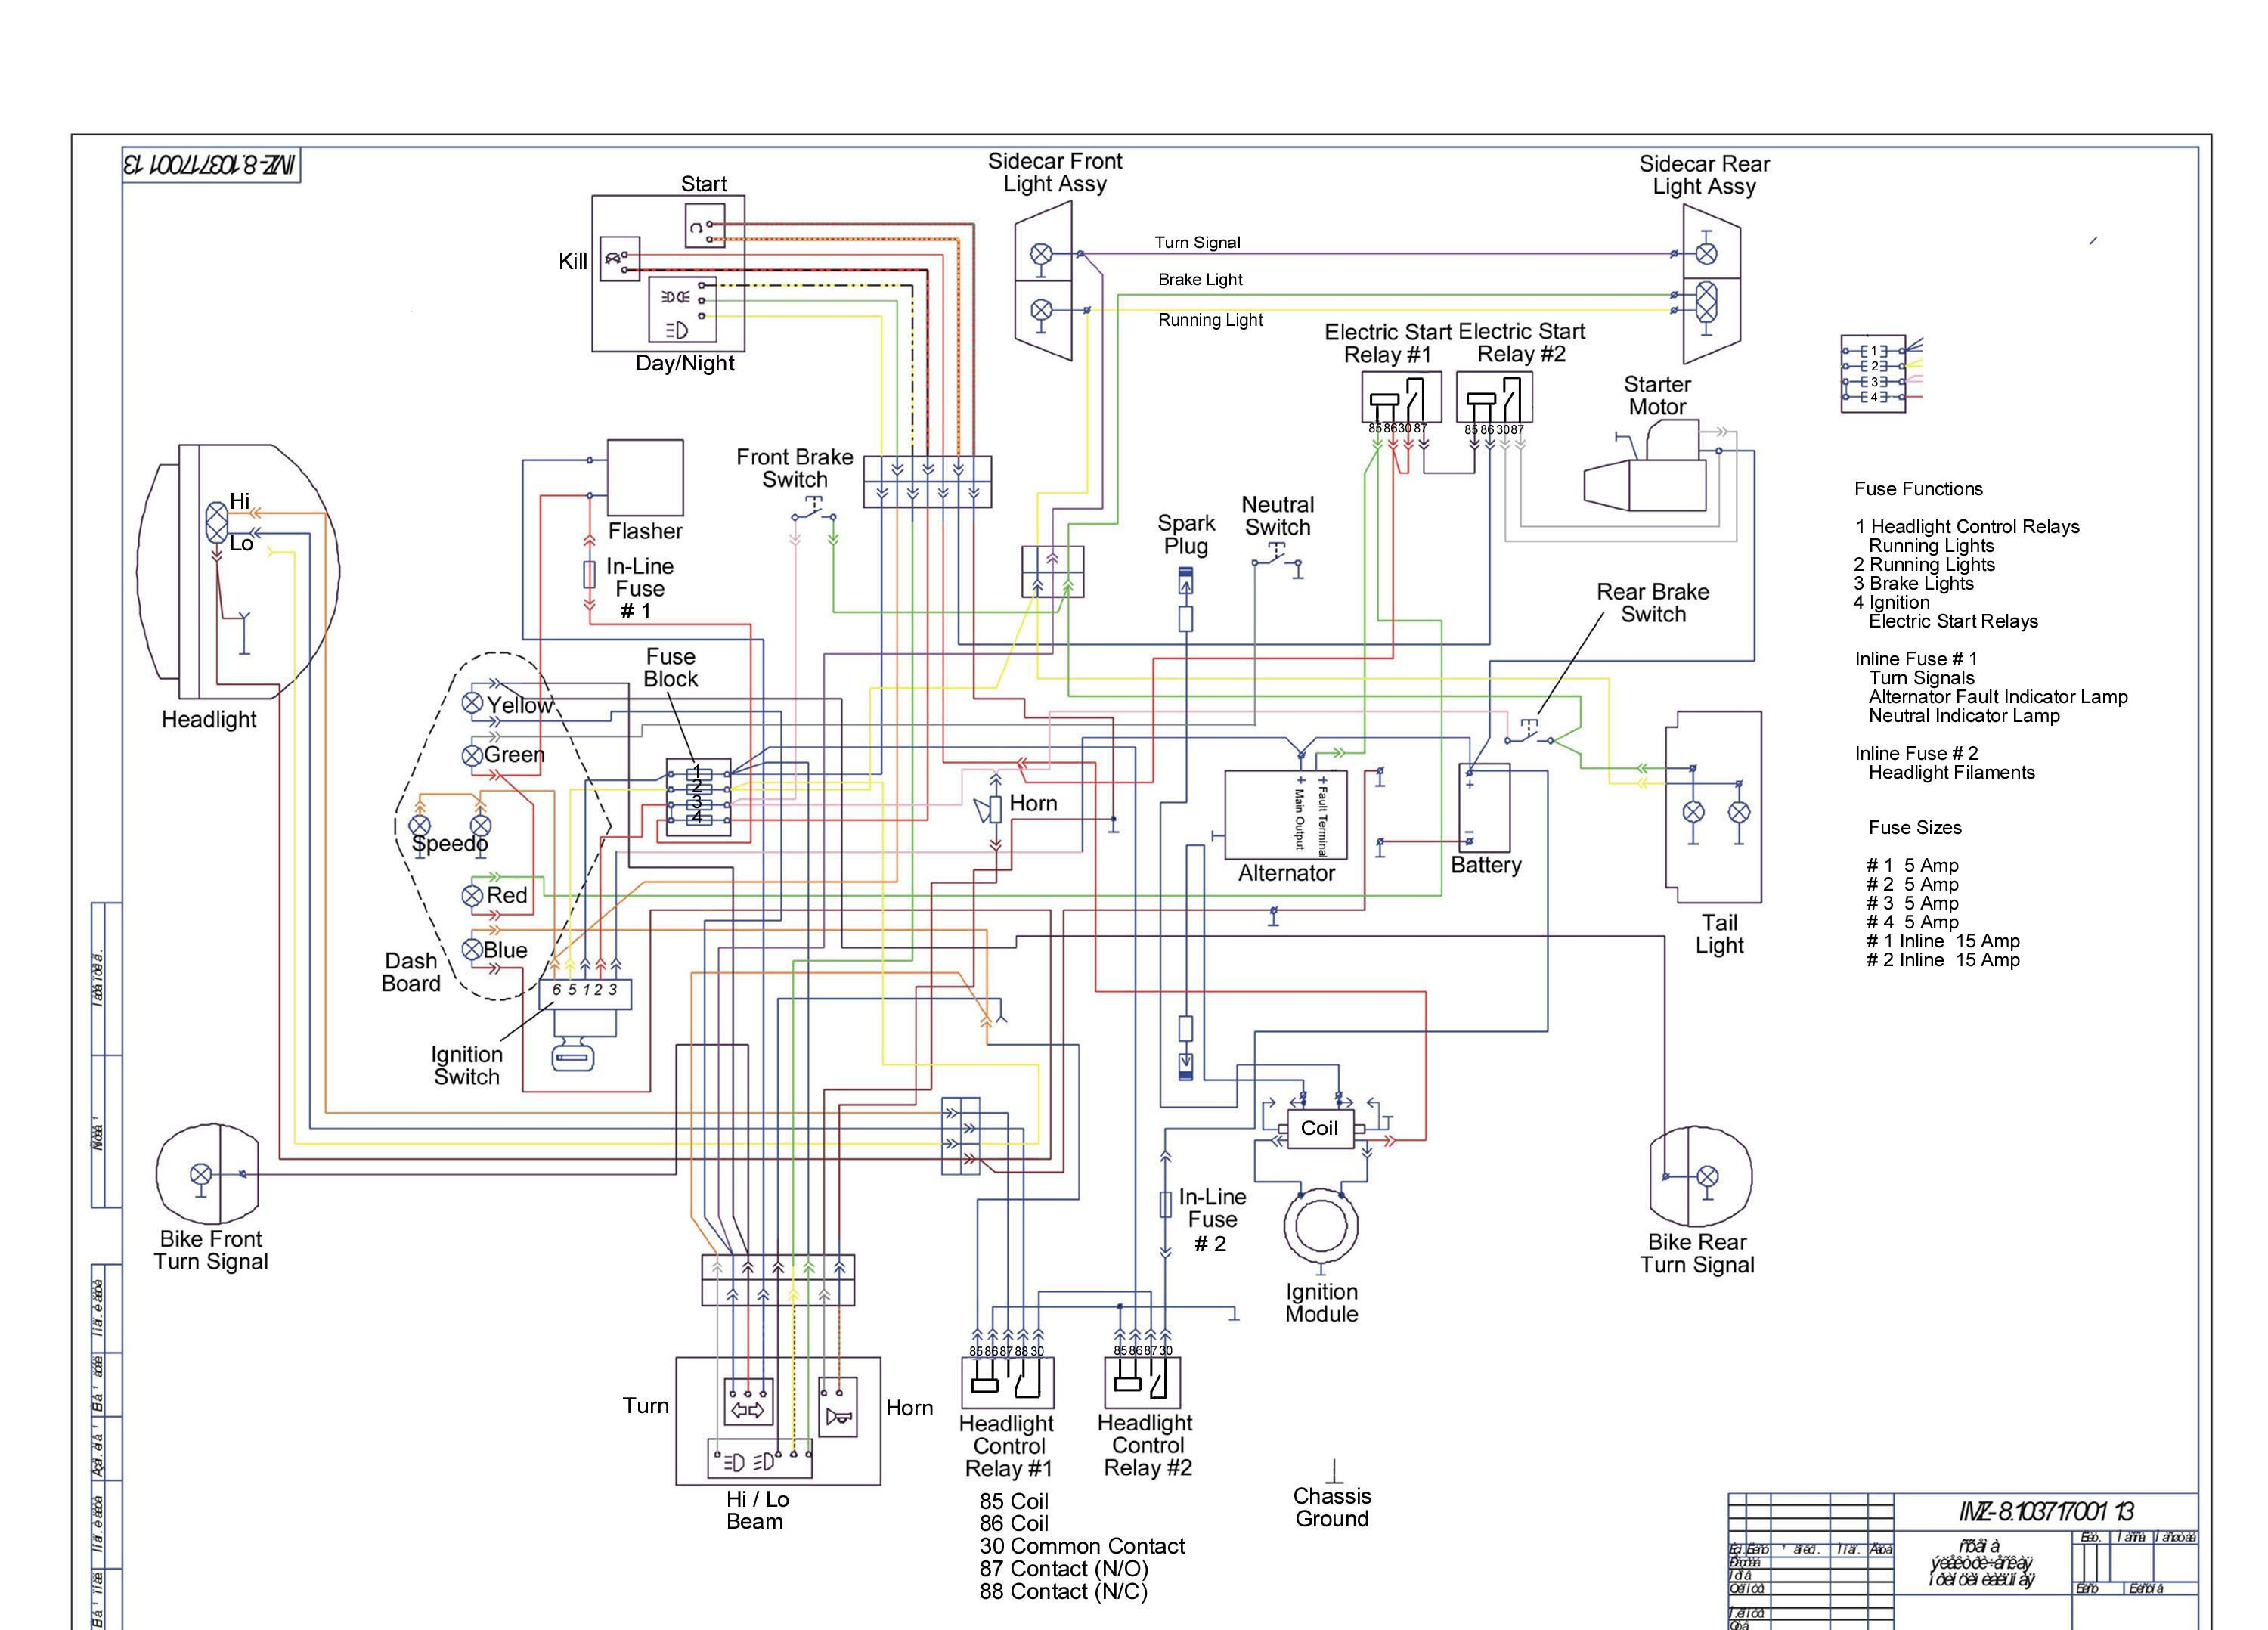 Siemens Talon Wiring Diagram also Clausing 14 1500 Series Metal Lathe Instruction Parts Manual additionally Sullair Wiring Diagrams also Supermax Wiring Diagram additionally Supermax Wiring Diagram. on supermax wiring diagram